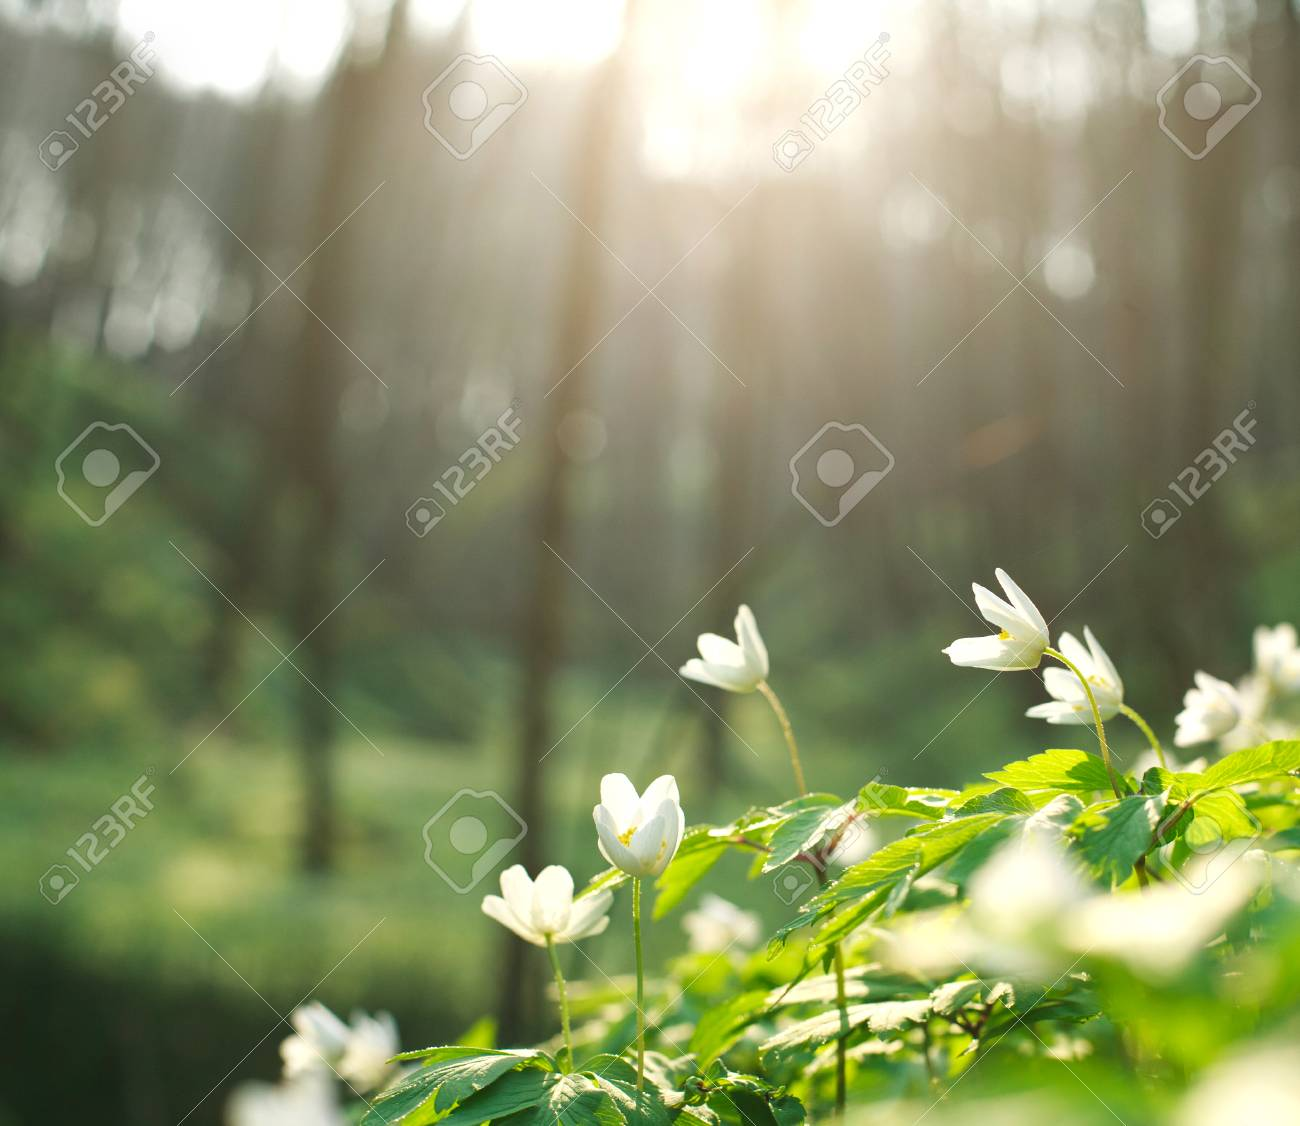 Spring White Flowers Blooming In The Forest On A Background Of